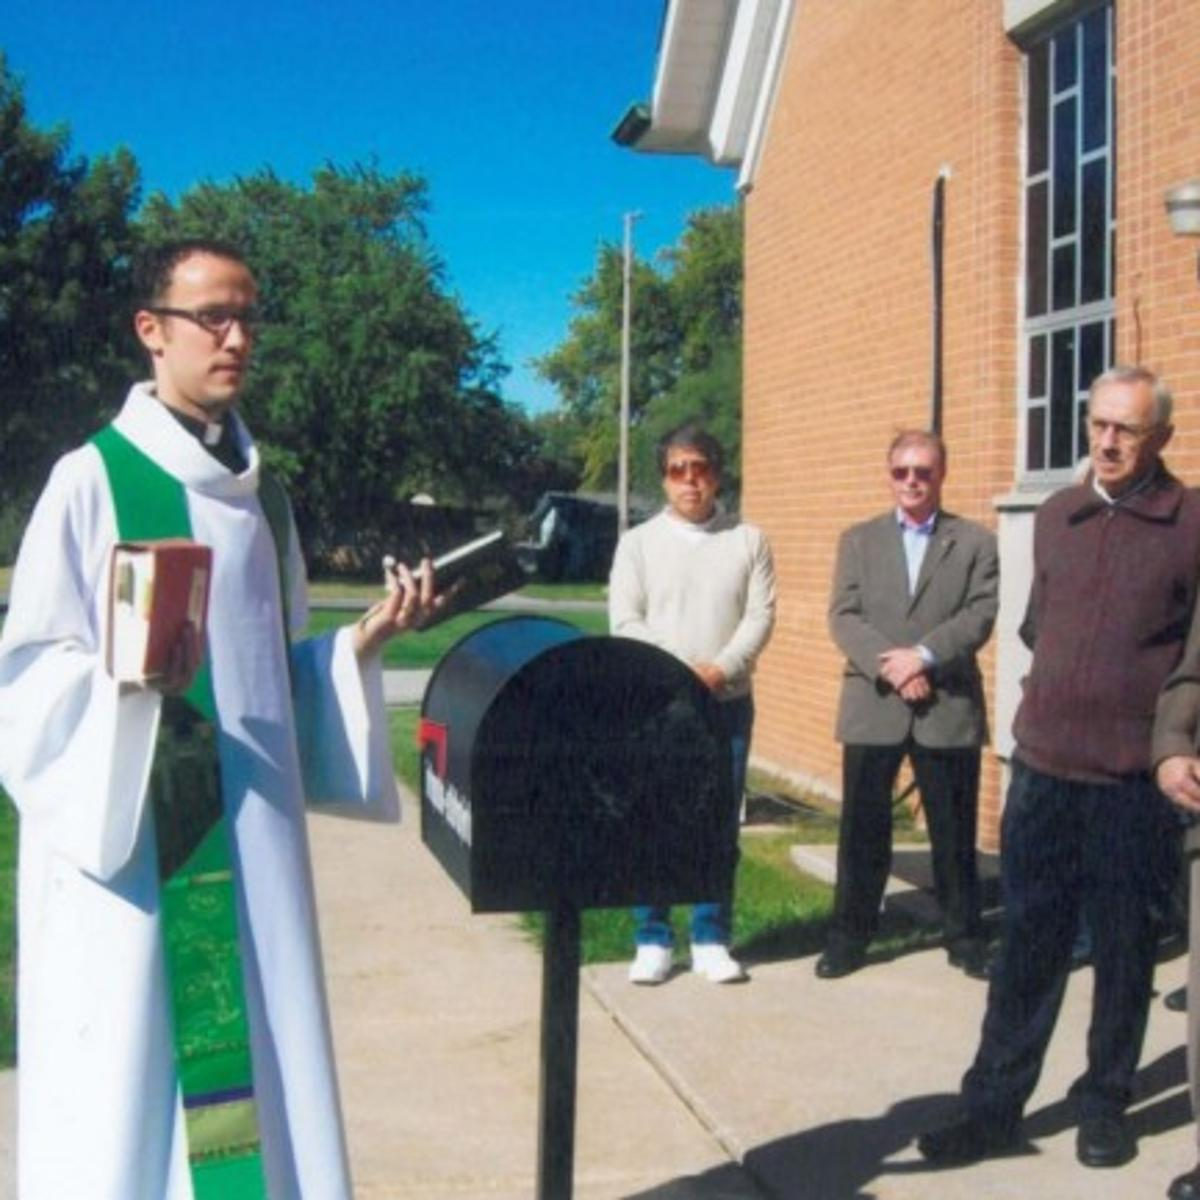 Church installs mailbox for prayer requests | Merrillville